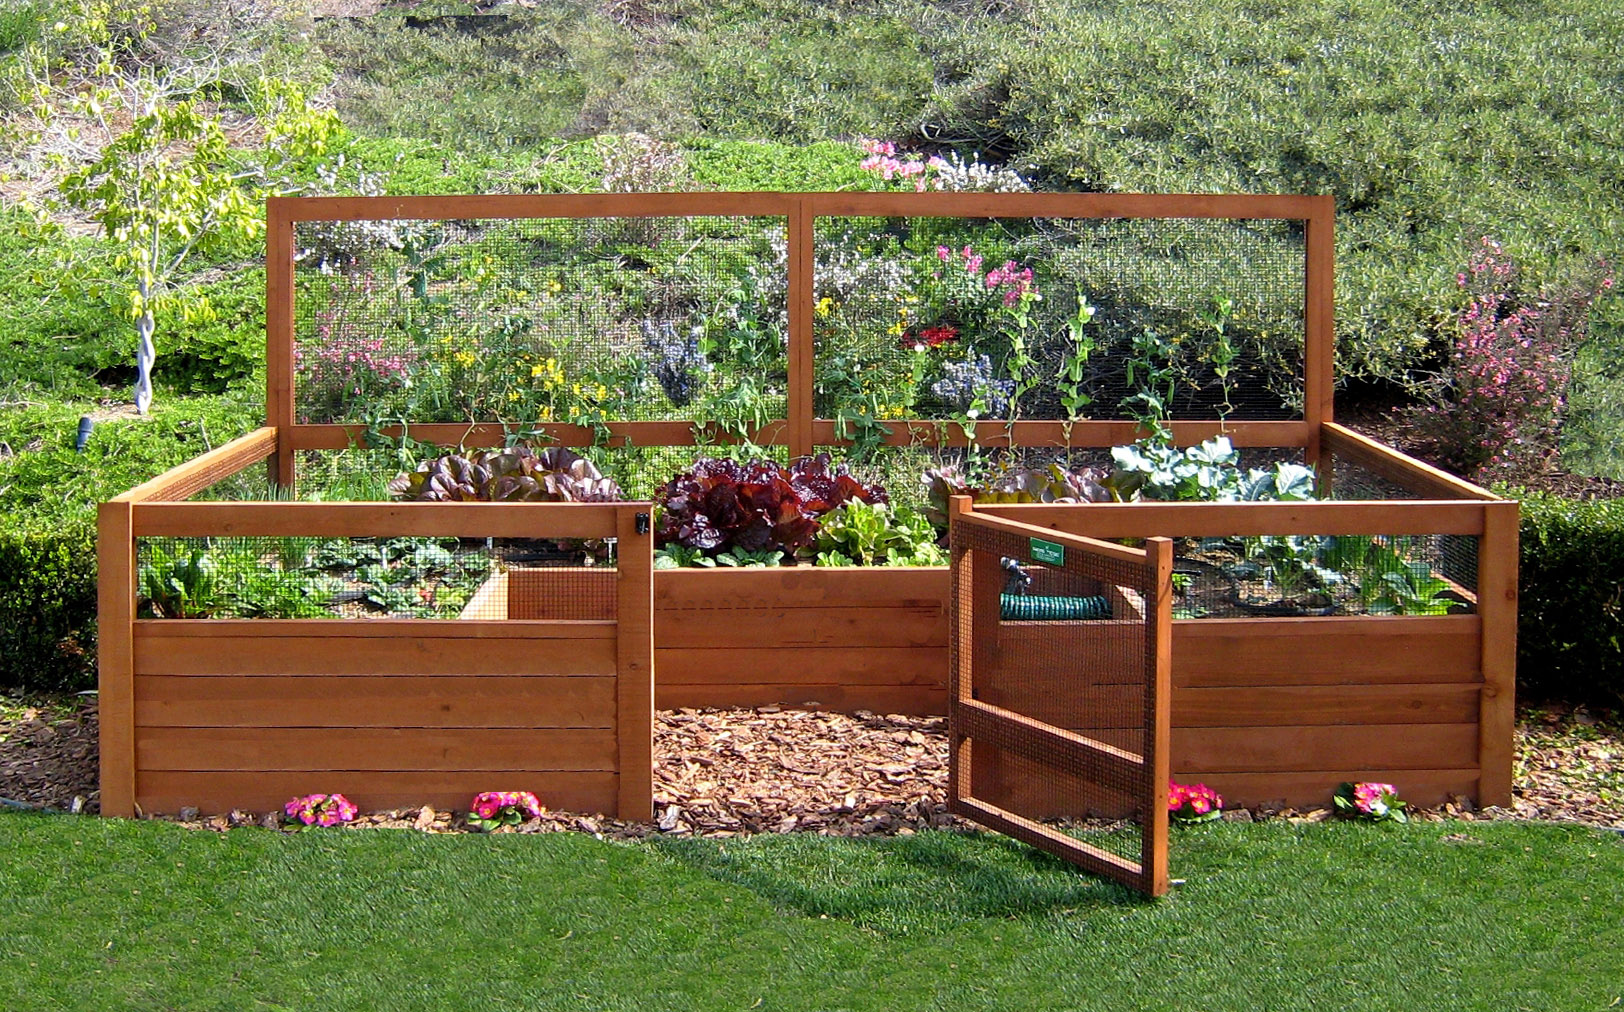 6 X12 Just Add Lumber Vegetable Garden Kit Gardens To Gro